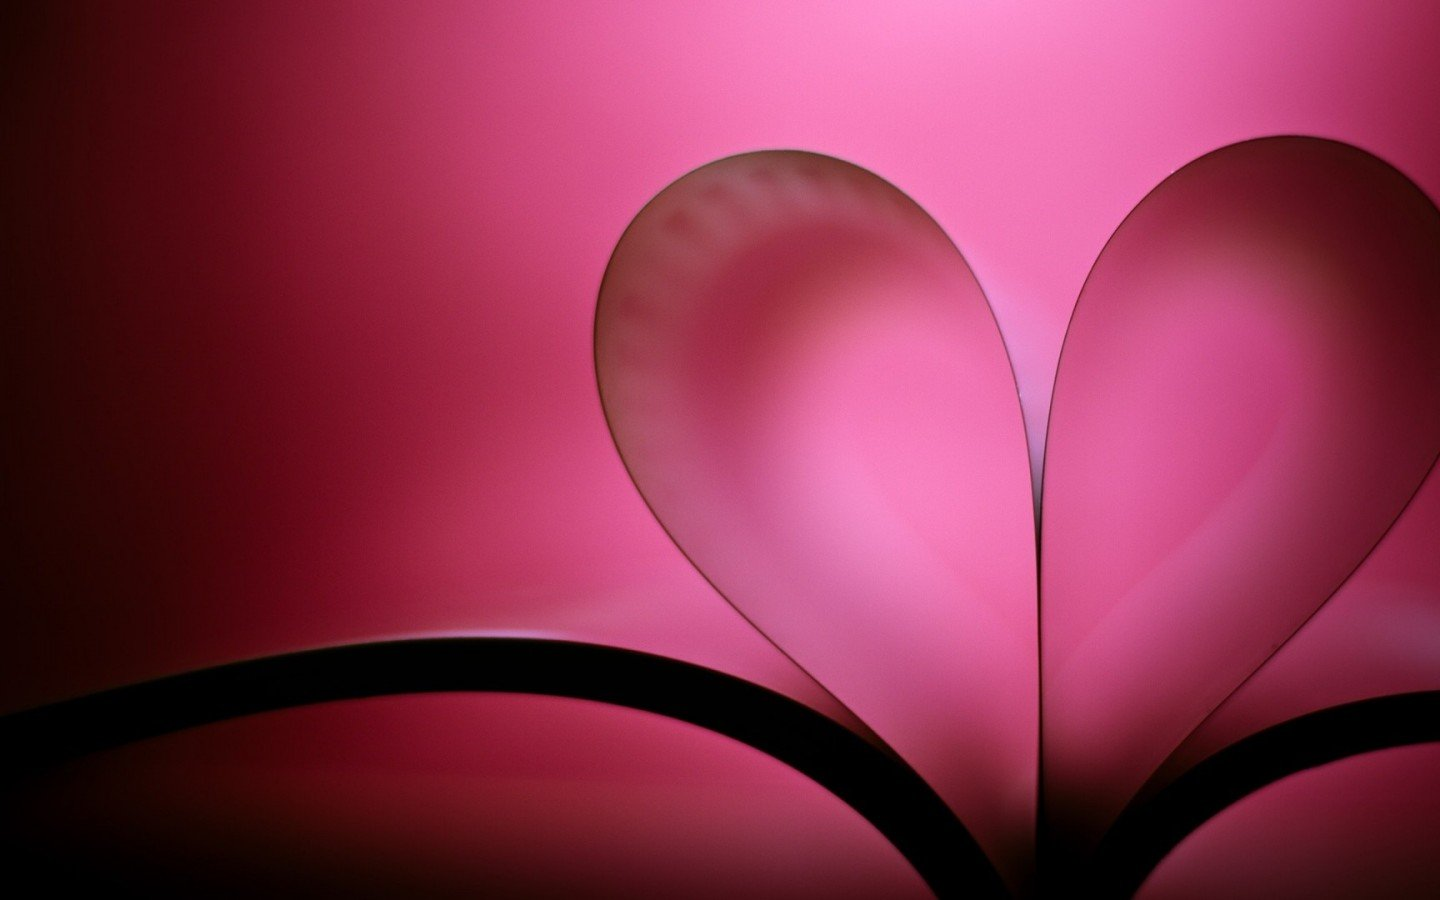 Love Wallpaper Hd Laptop : HD Love Wallpapers for Laptop - WallpaperSafari